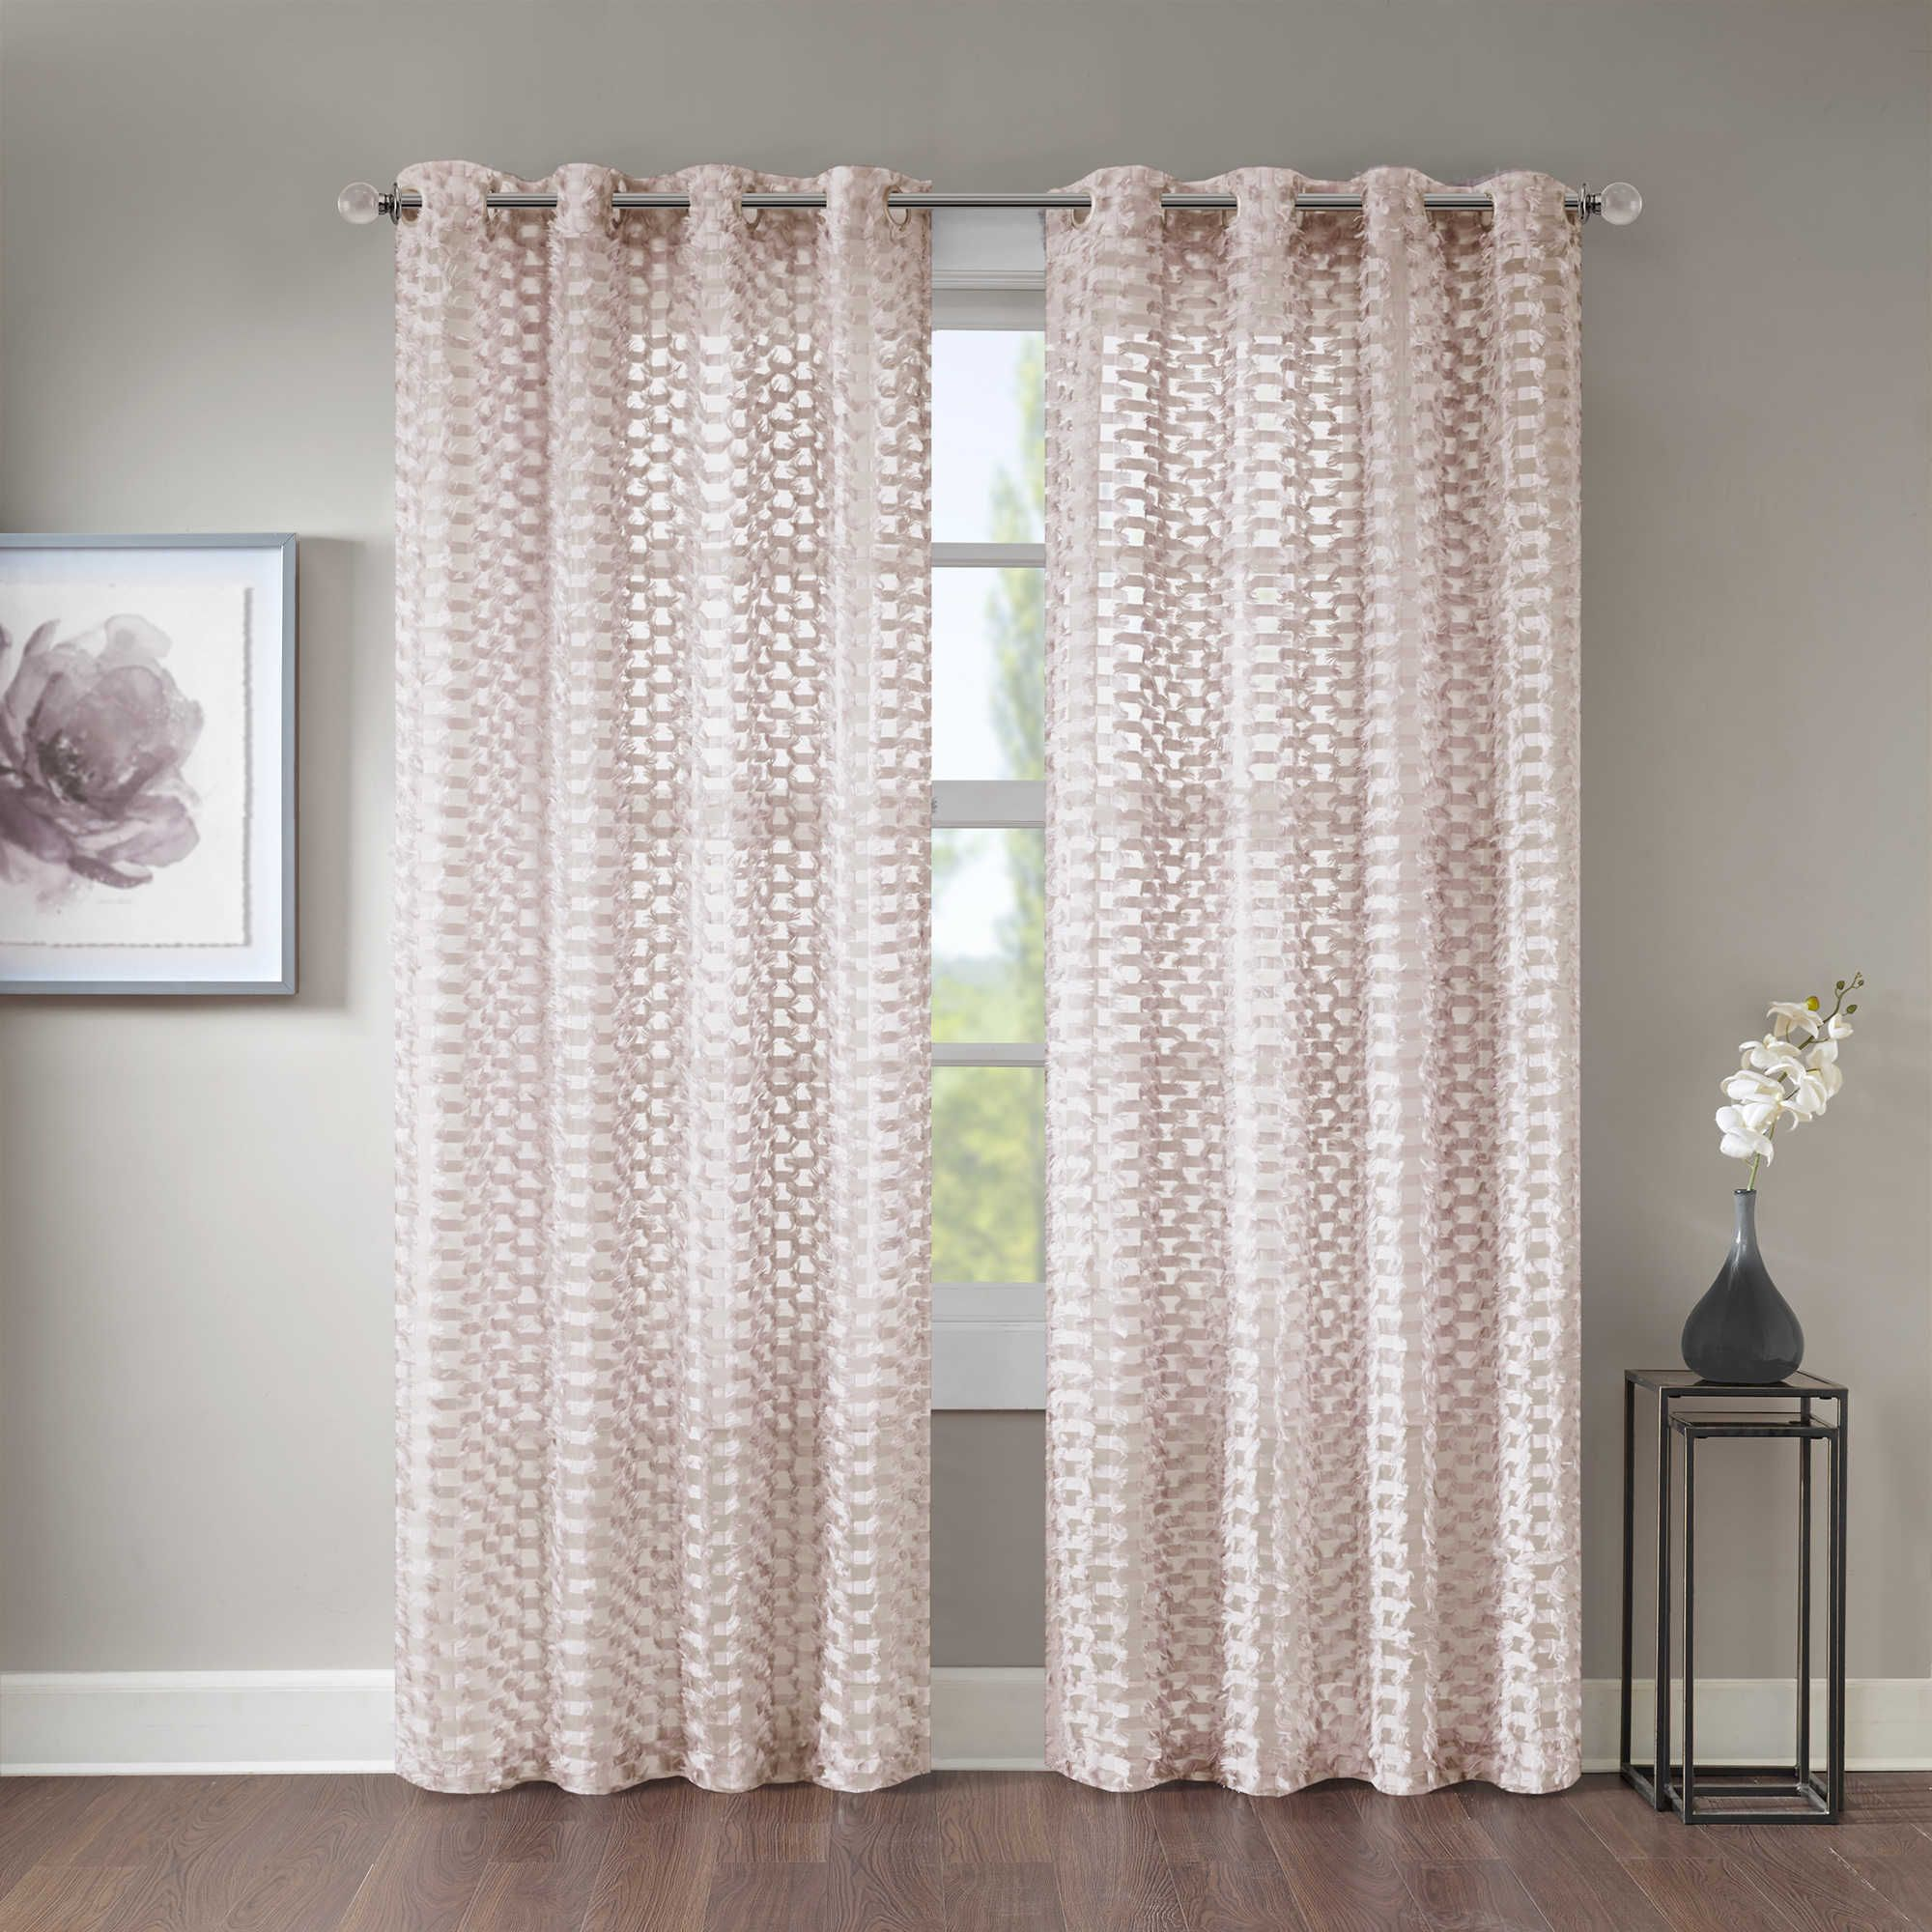 Lavender Sheer Curtains Erin 63 Inch Sheer Grommet Top Window Curtain Panel In Lavender